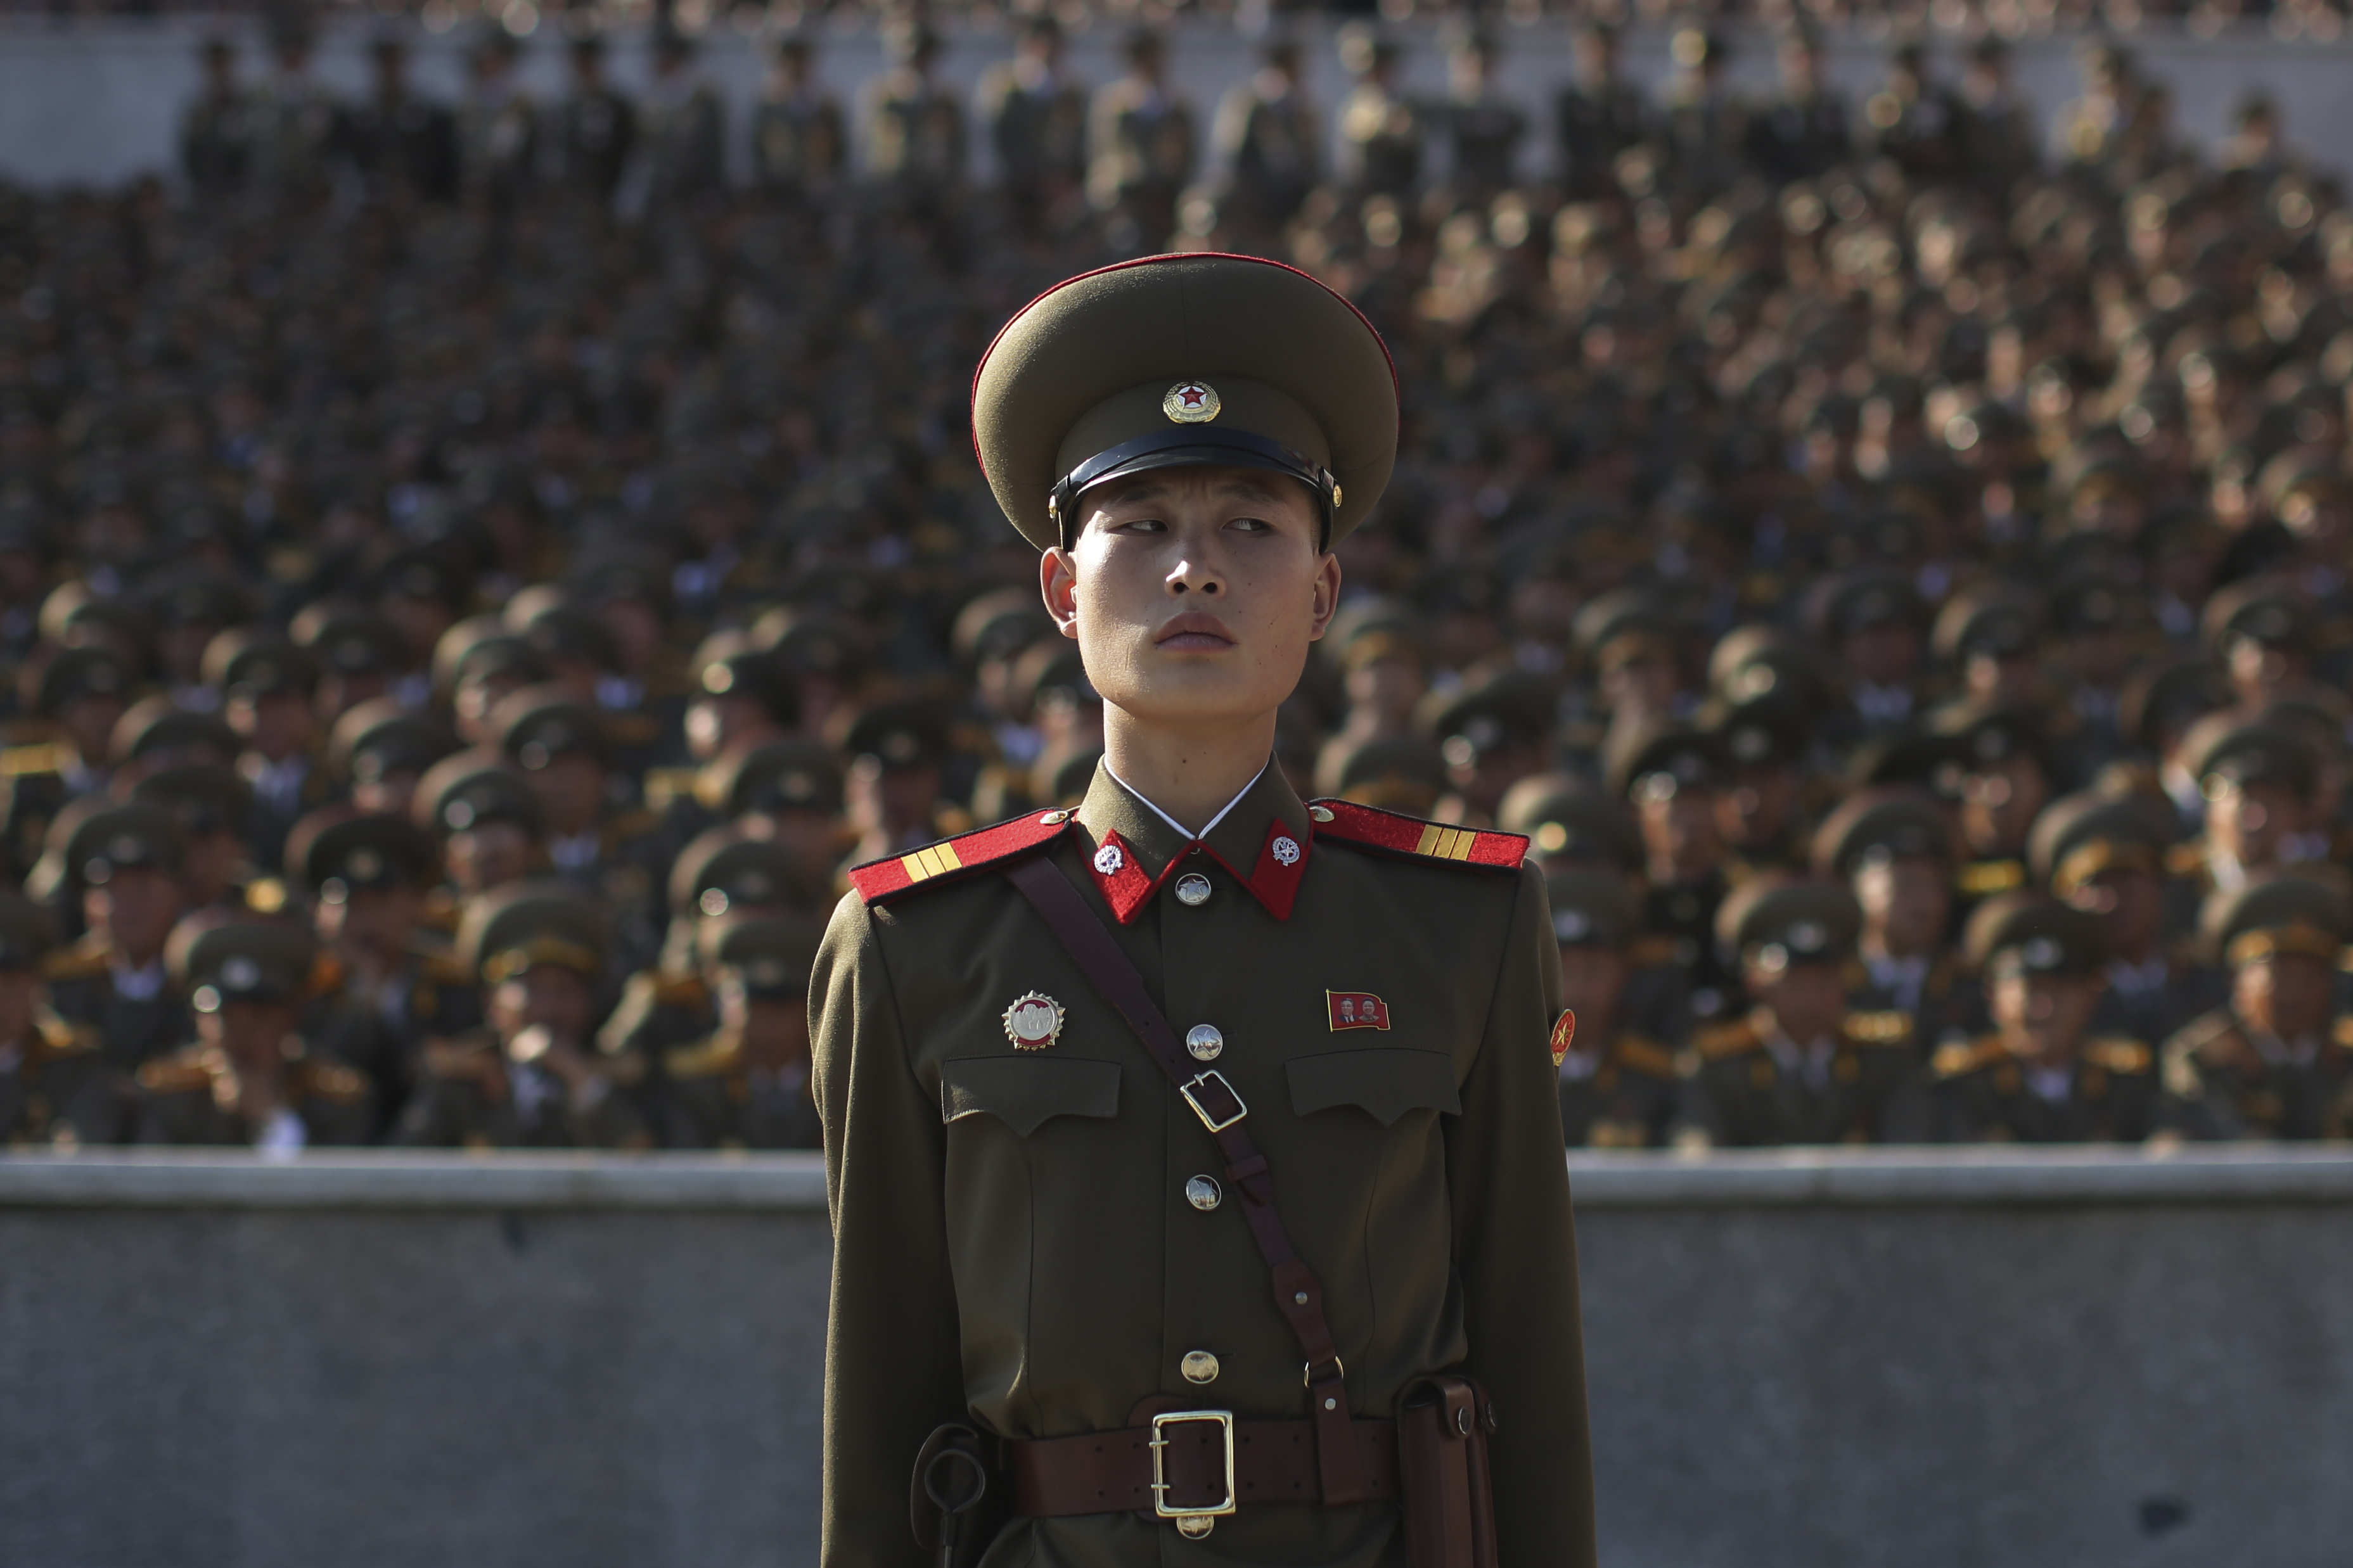 A soldier stands at a parade in Pyongyang, North Korea, on Oct. 10, 2015.